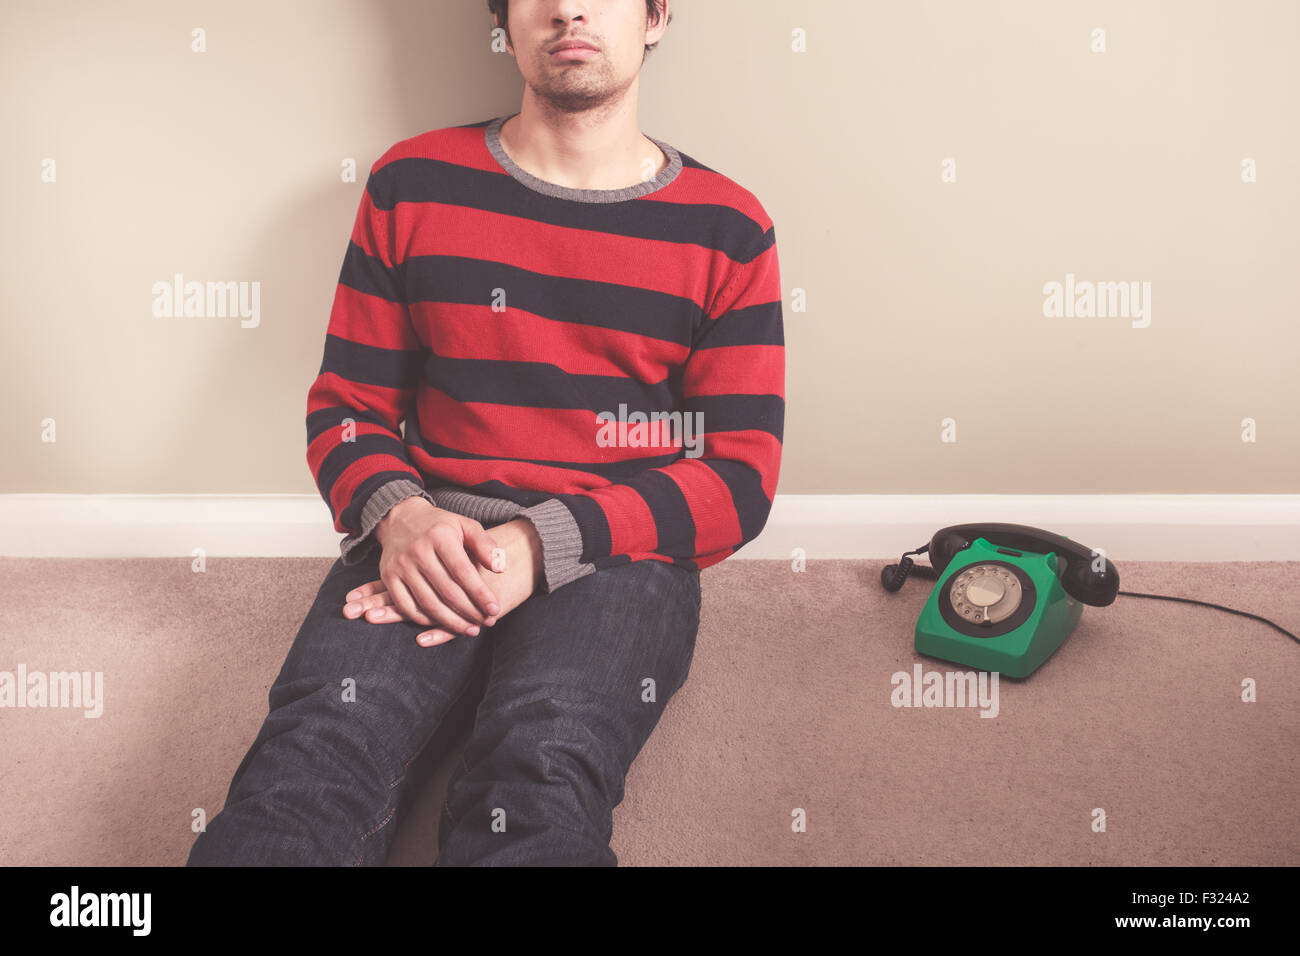 Young man is sitting on the floor with a telephone next to him - Stock Image